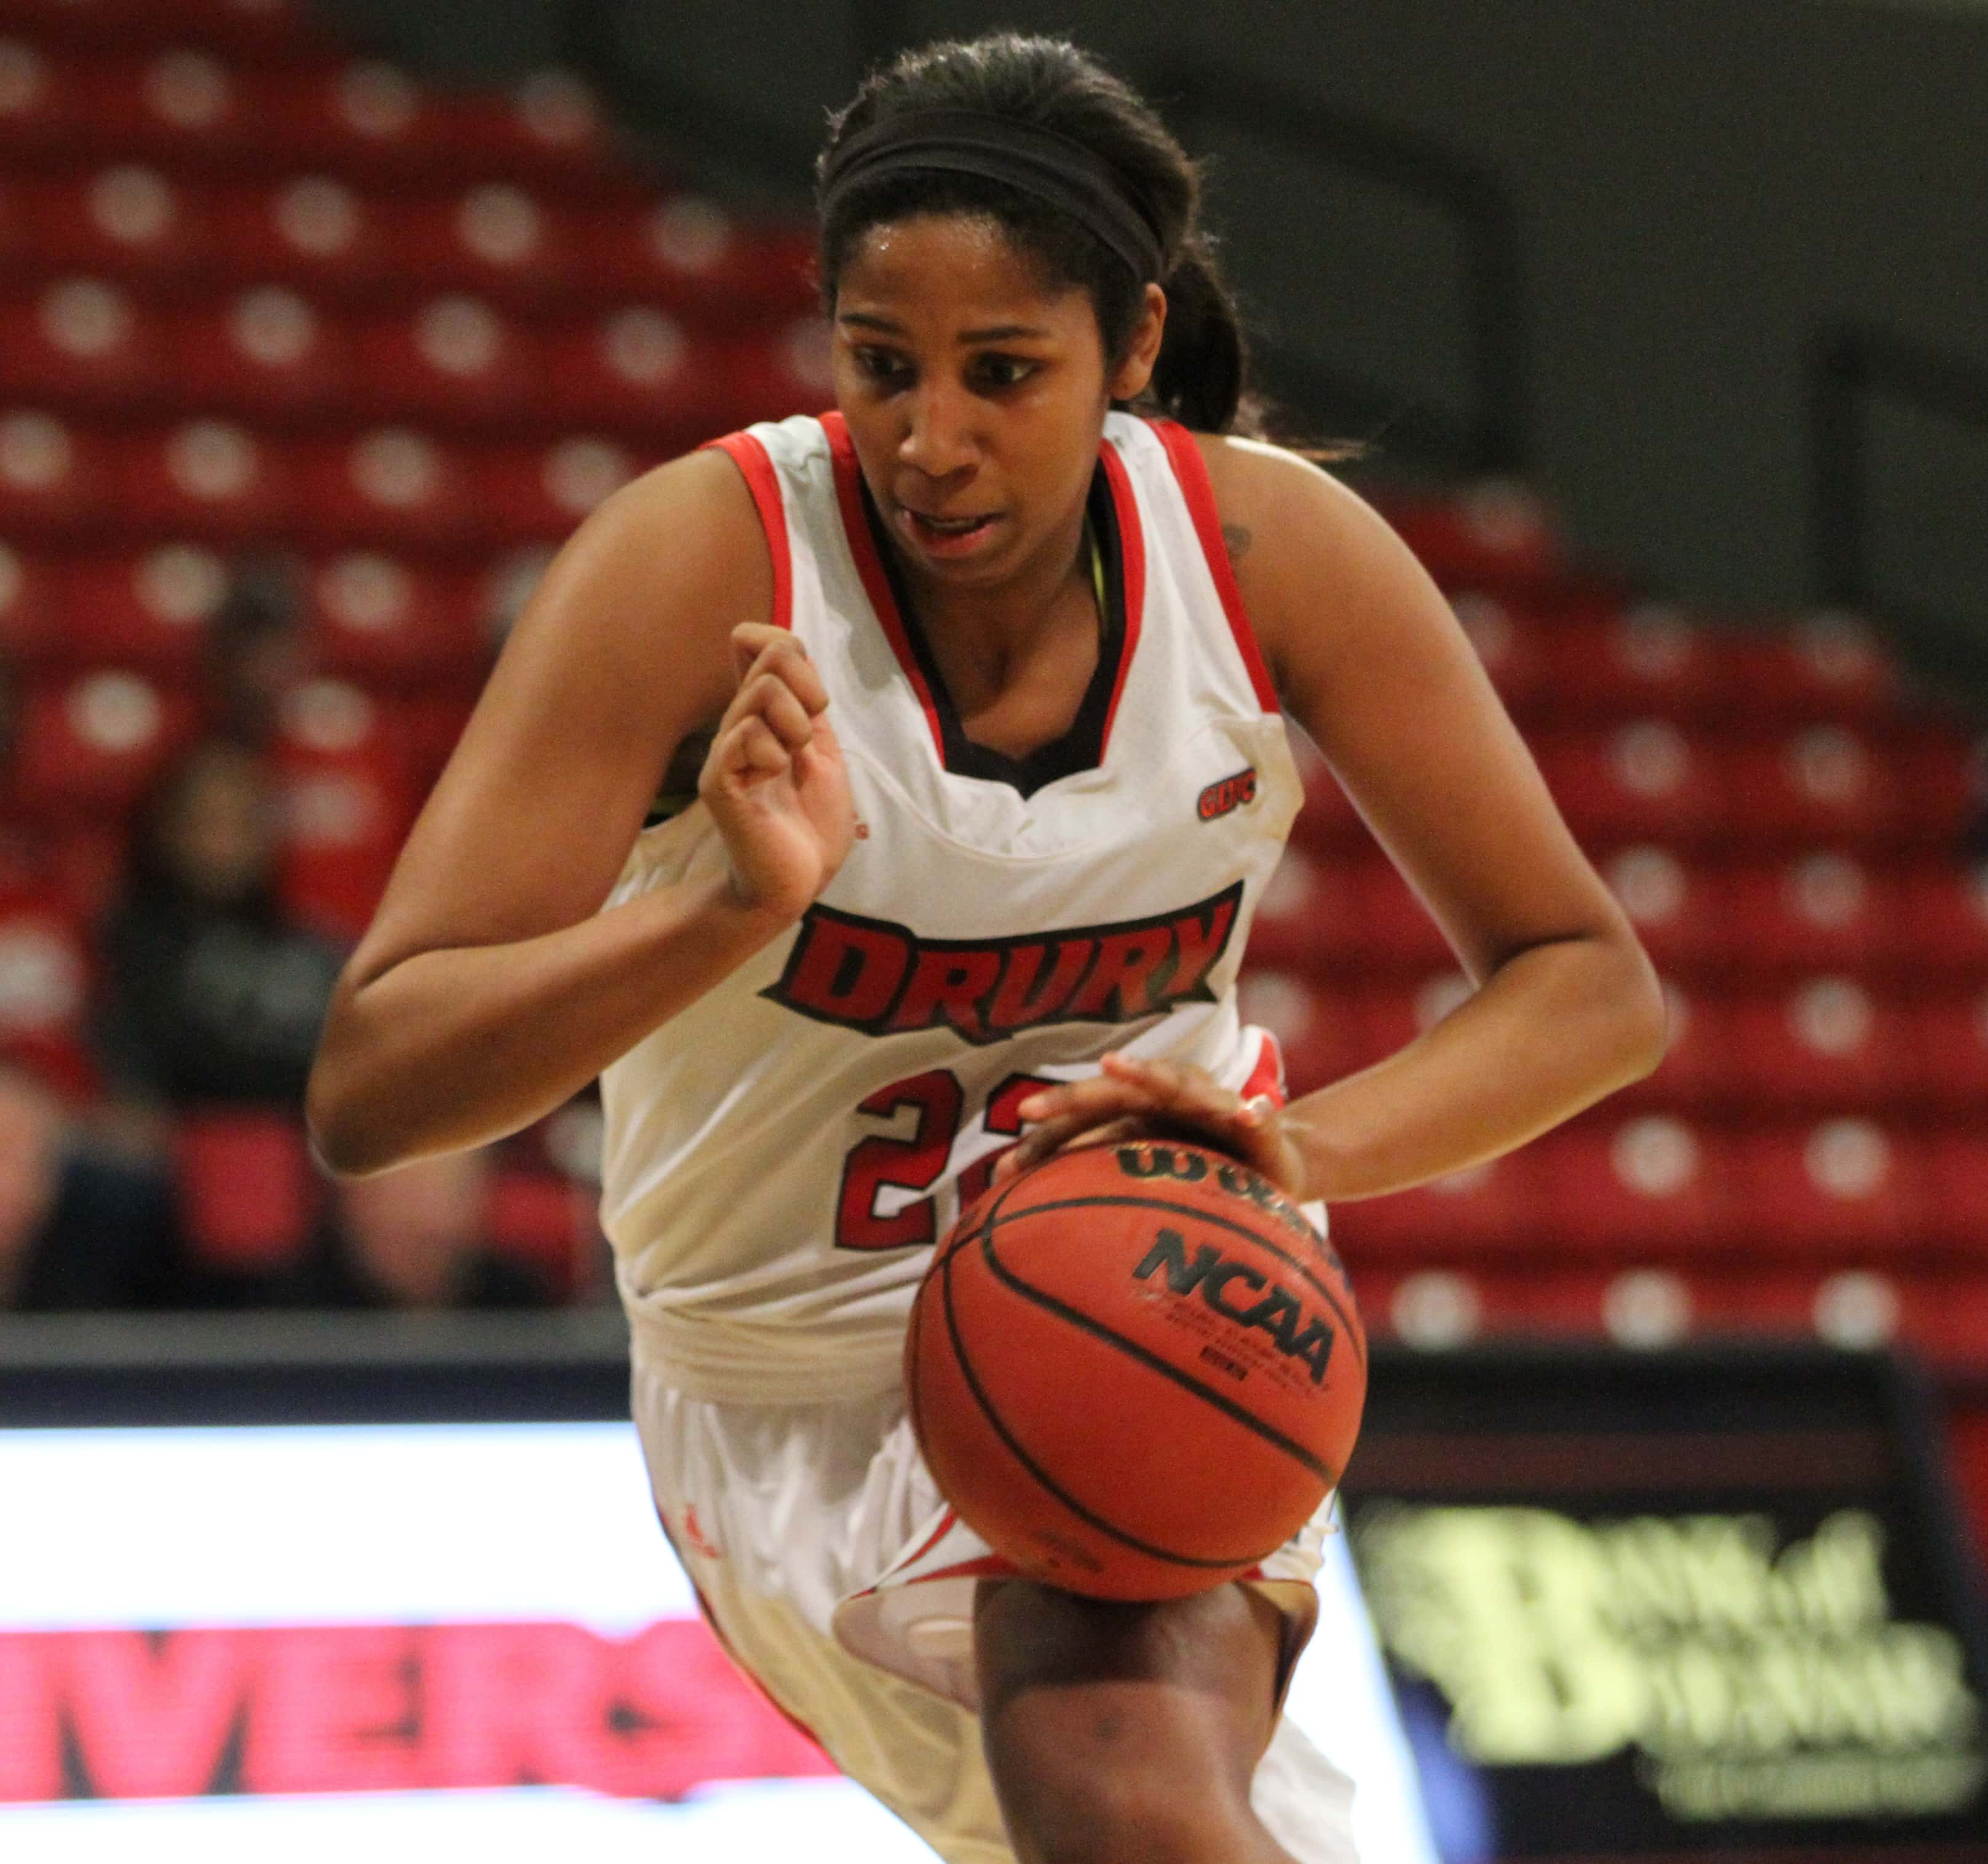 Drury Lady Panthers